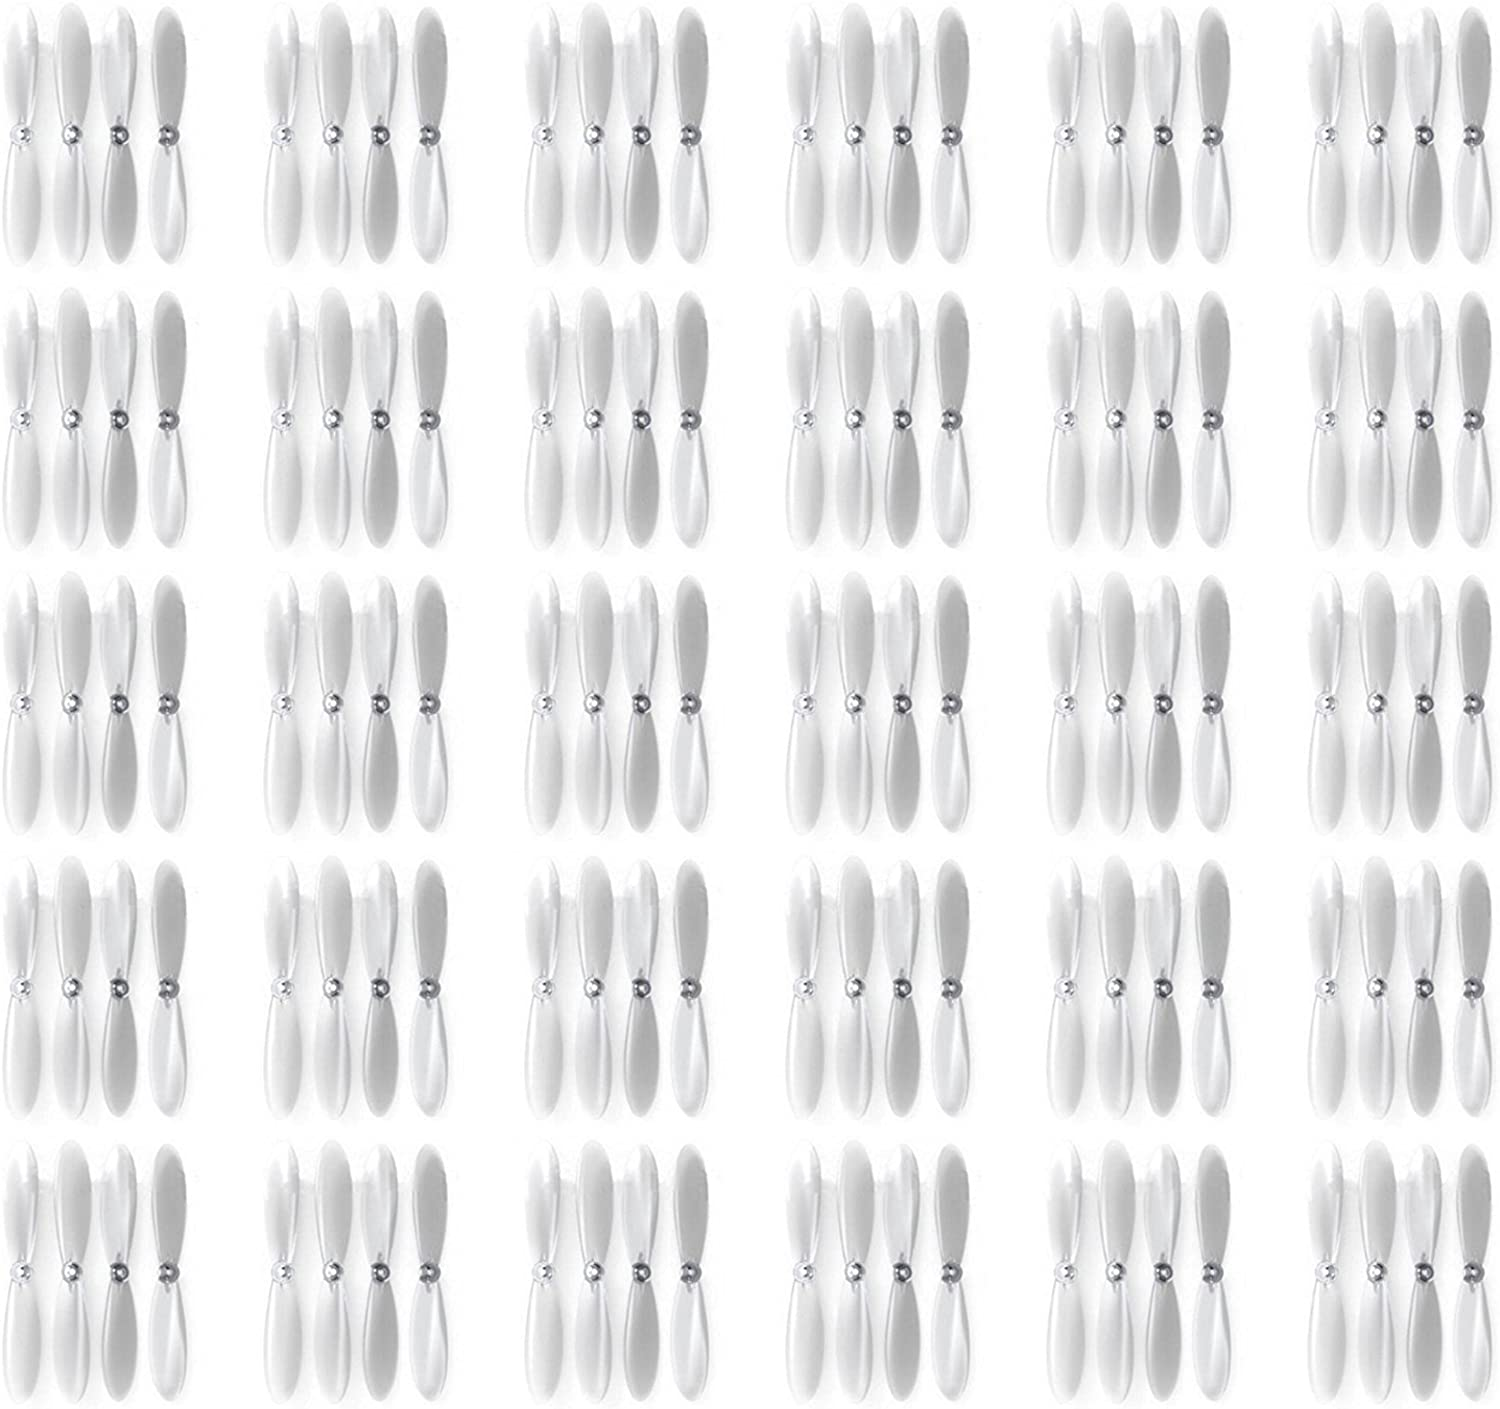 30 x Quantity of Estes Dart Clear Propeller Blades Props Transparent Propellers - FAST FROM Orlando, Florida USA